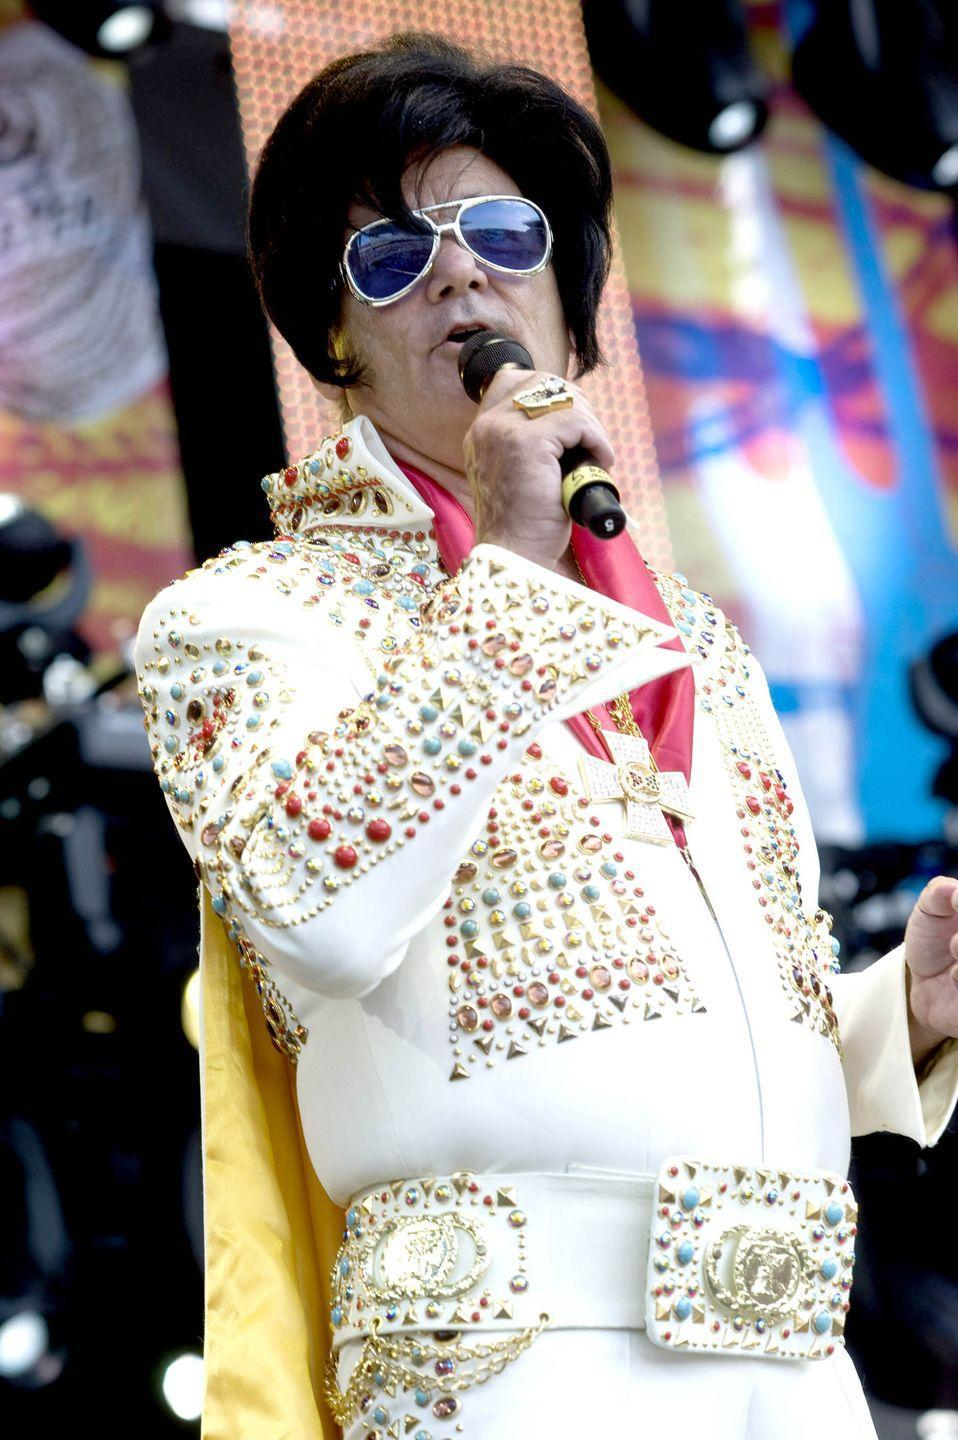 <p>Dressed as Elvis Presley, actor Bill Murray performs onstage at Eric Clapton's Crossroads Guitar Festival, held at Toyota Park, Bridgeview, Illinois, June 26, 2010.</p>